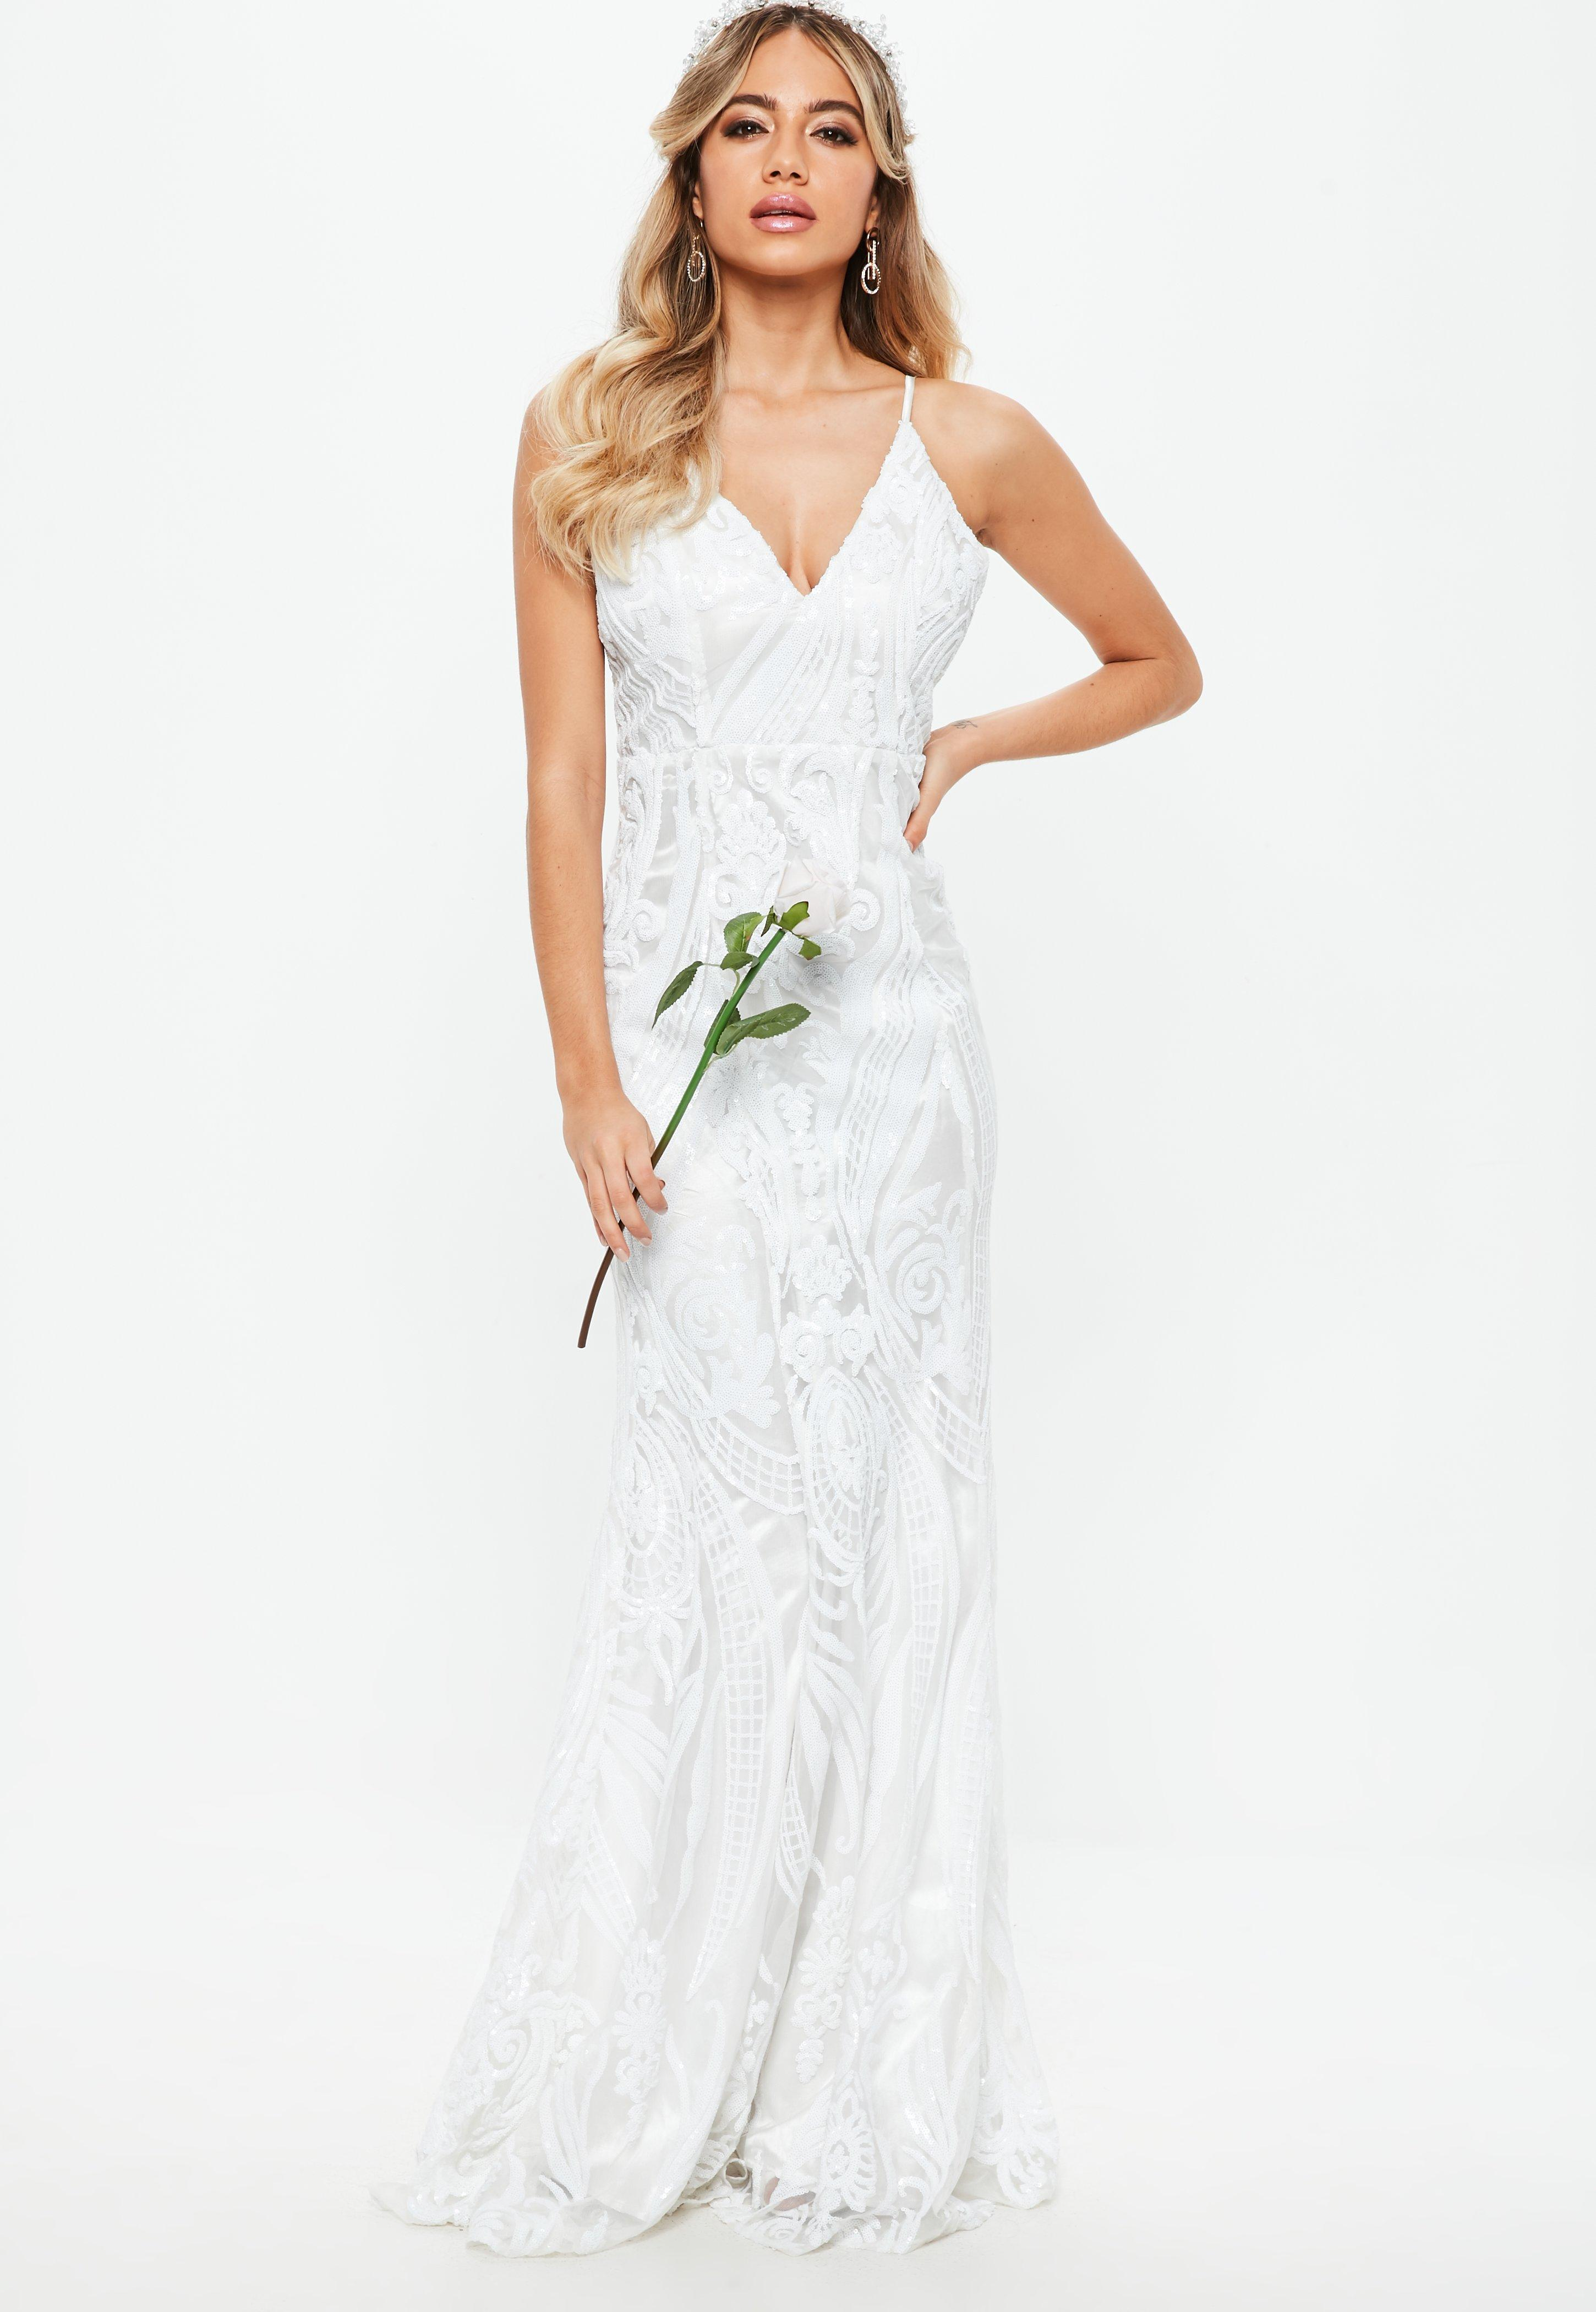 Lyst - Missguided Bridal White Strappy Sequin Embellished Fishtail ...